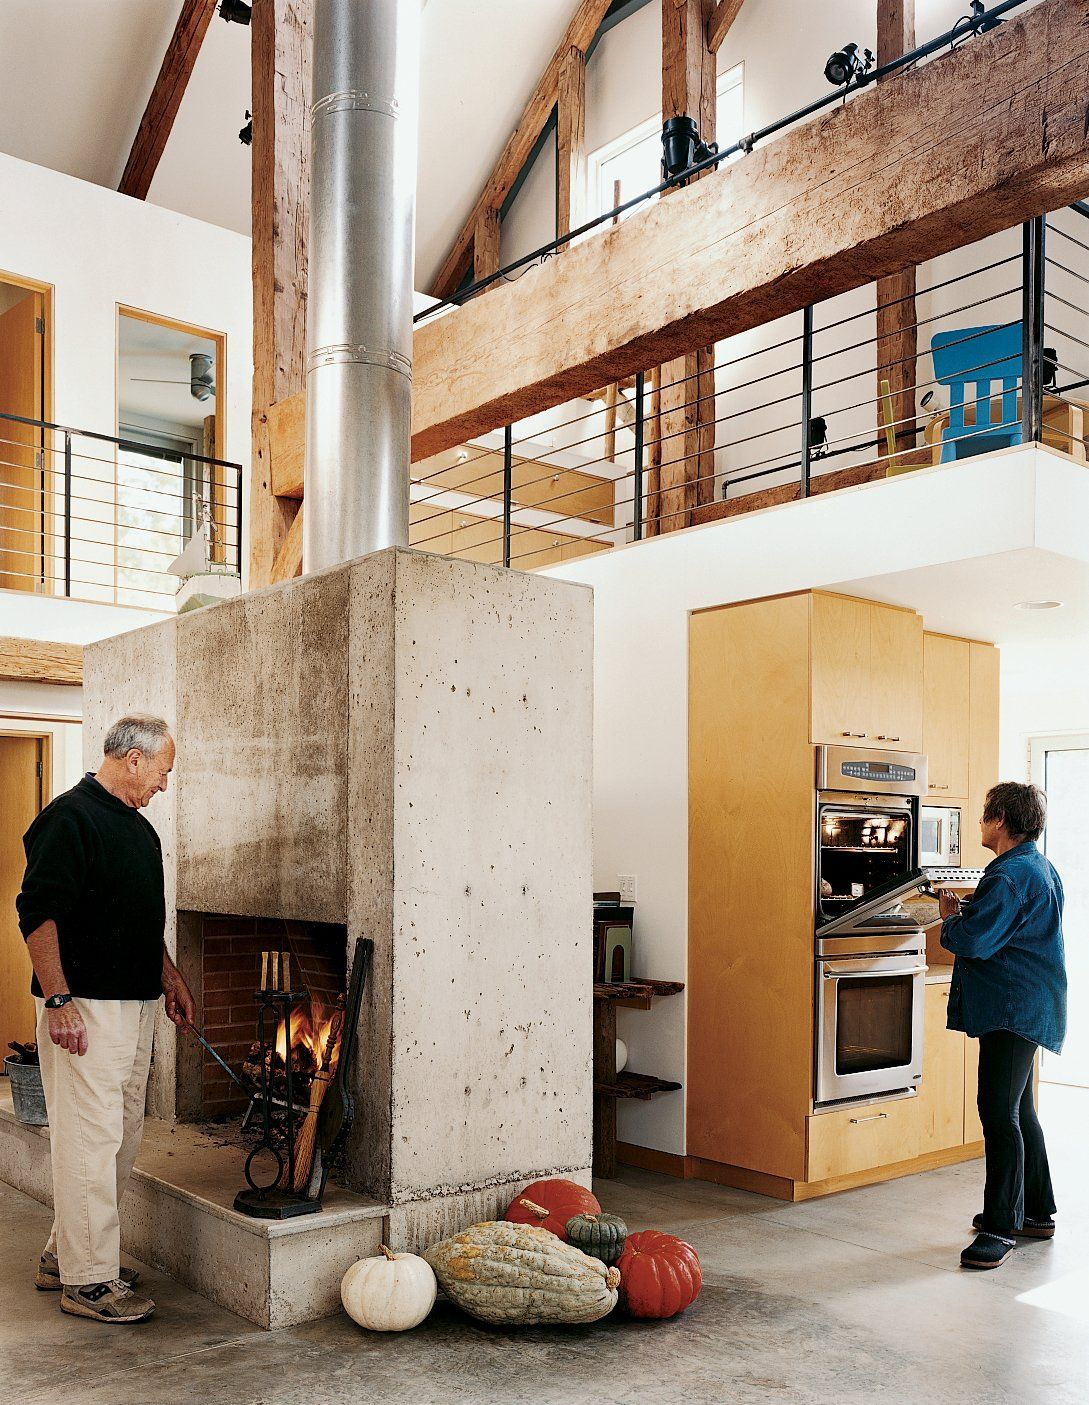 In keeping with the Goodmans' desire for just enough subdivision for rooms to sleep and work in, Cohen inserted a two-story volume into one of the barn frame's side aisles. An additional small mezzanine over the kitchen serves as a play area for the grandchildren. Tagged: Kitchen, Wall Oven, Concrete Floor, Wood Cabinet, and Microwave. Photo 13 of 14 in 13 Brilliant Barn Conversions That Merge Past and Present from Raising the Barn